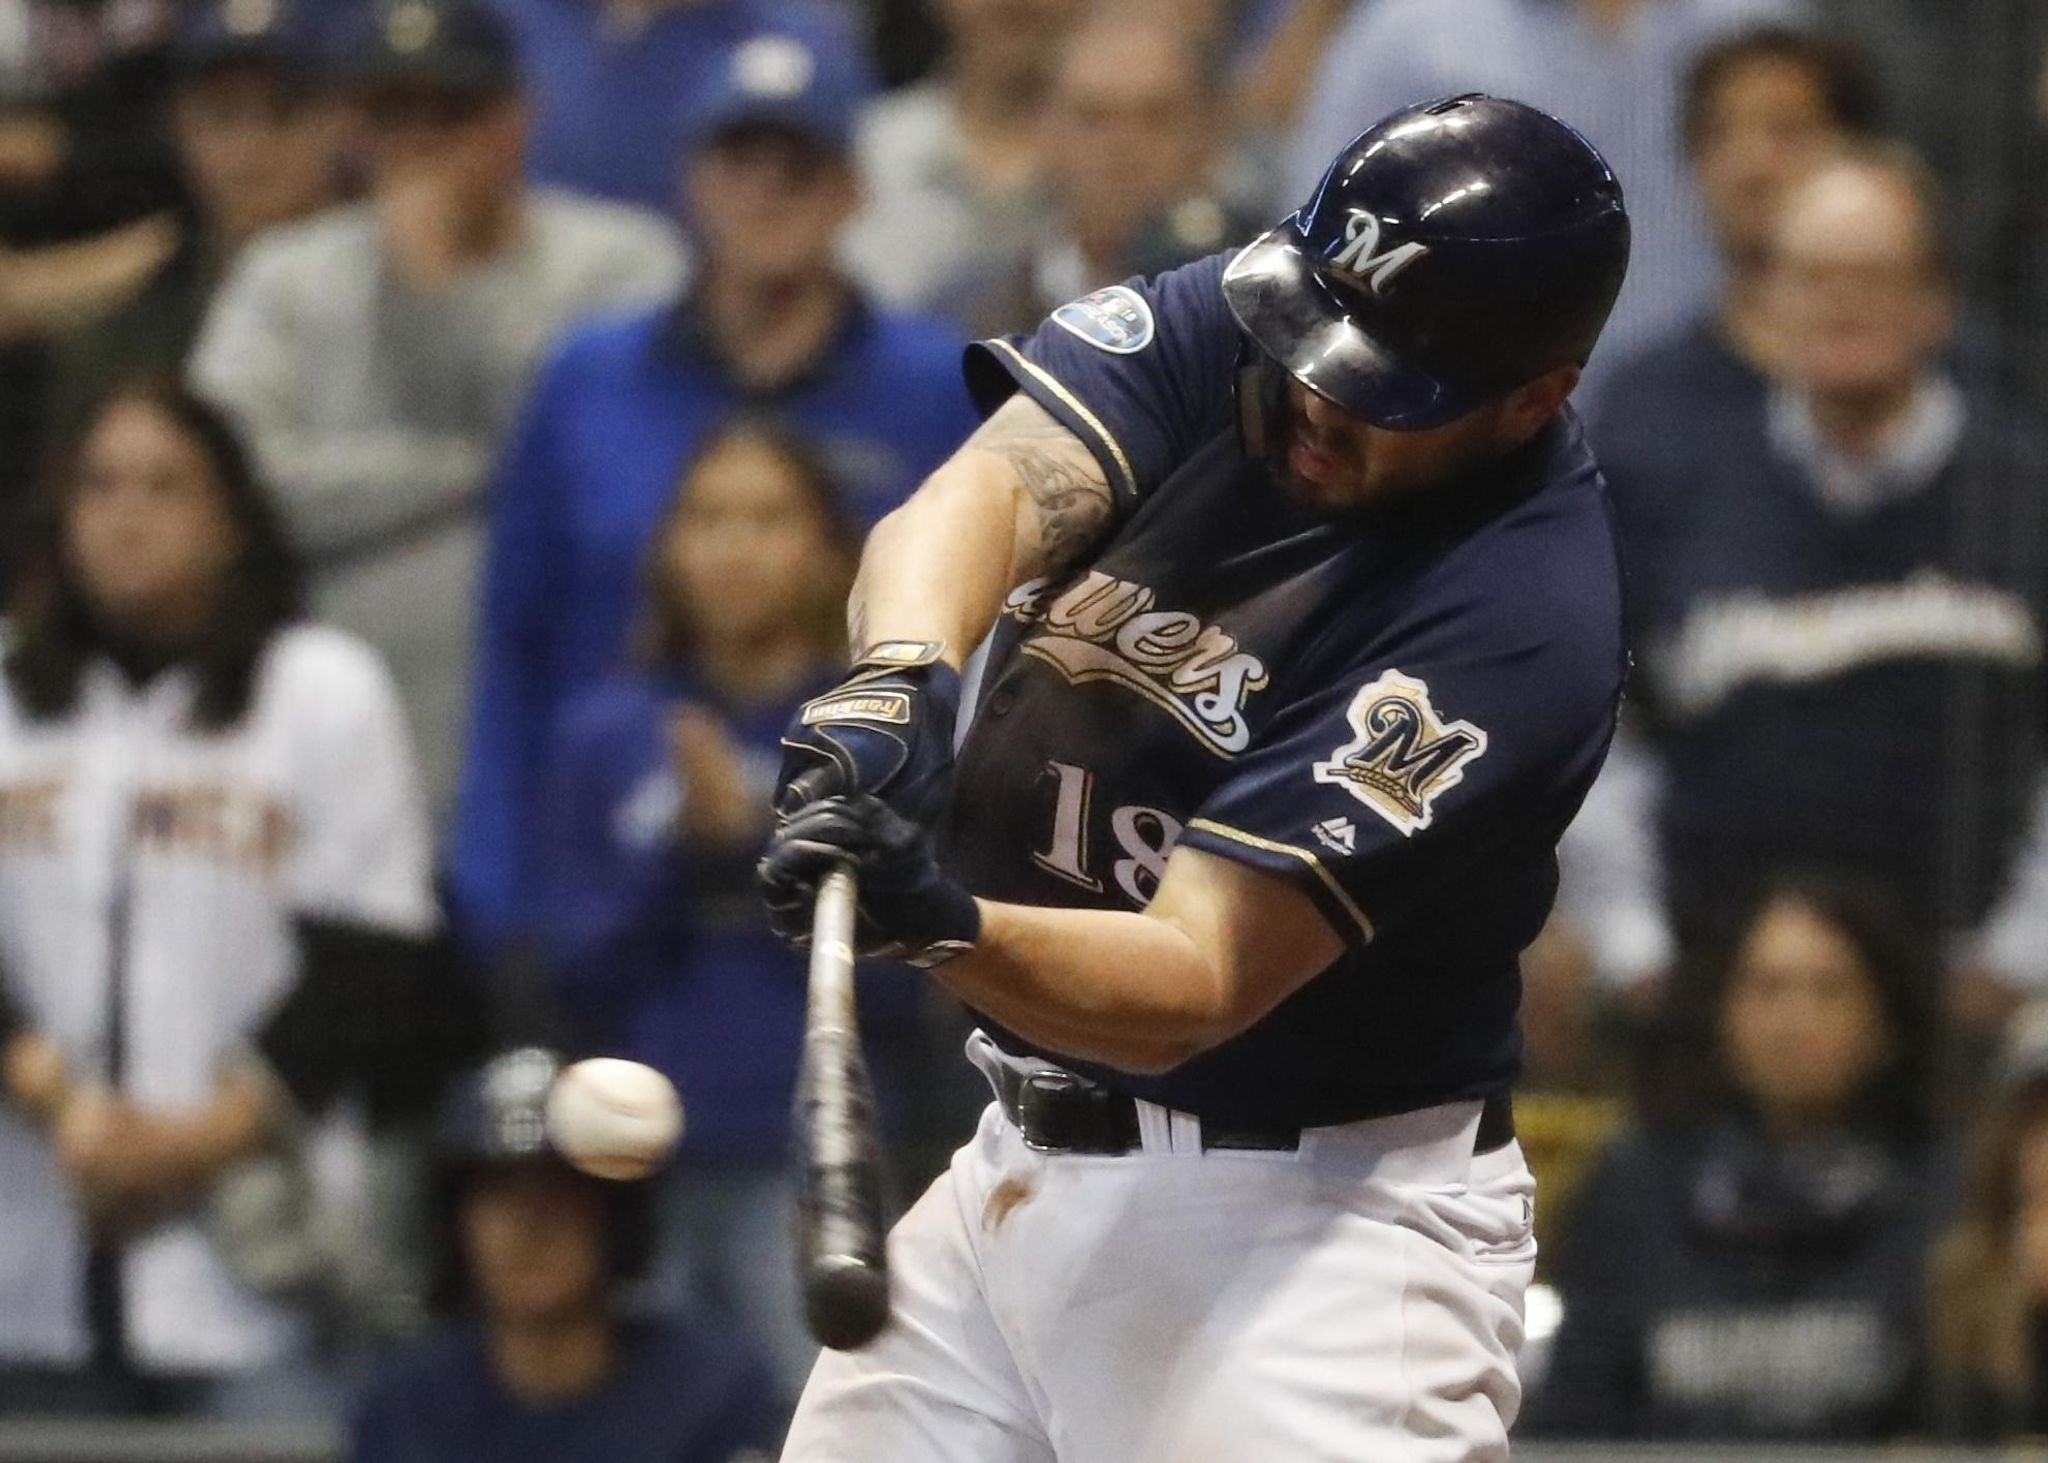 Brewers_moustakas_baseball_65426_s2048x1463